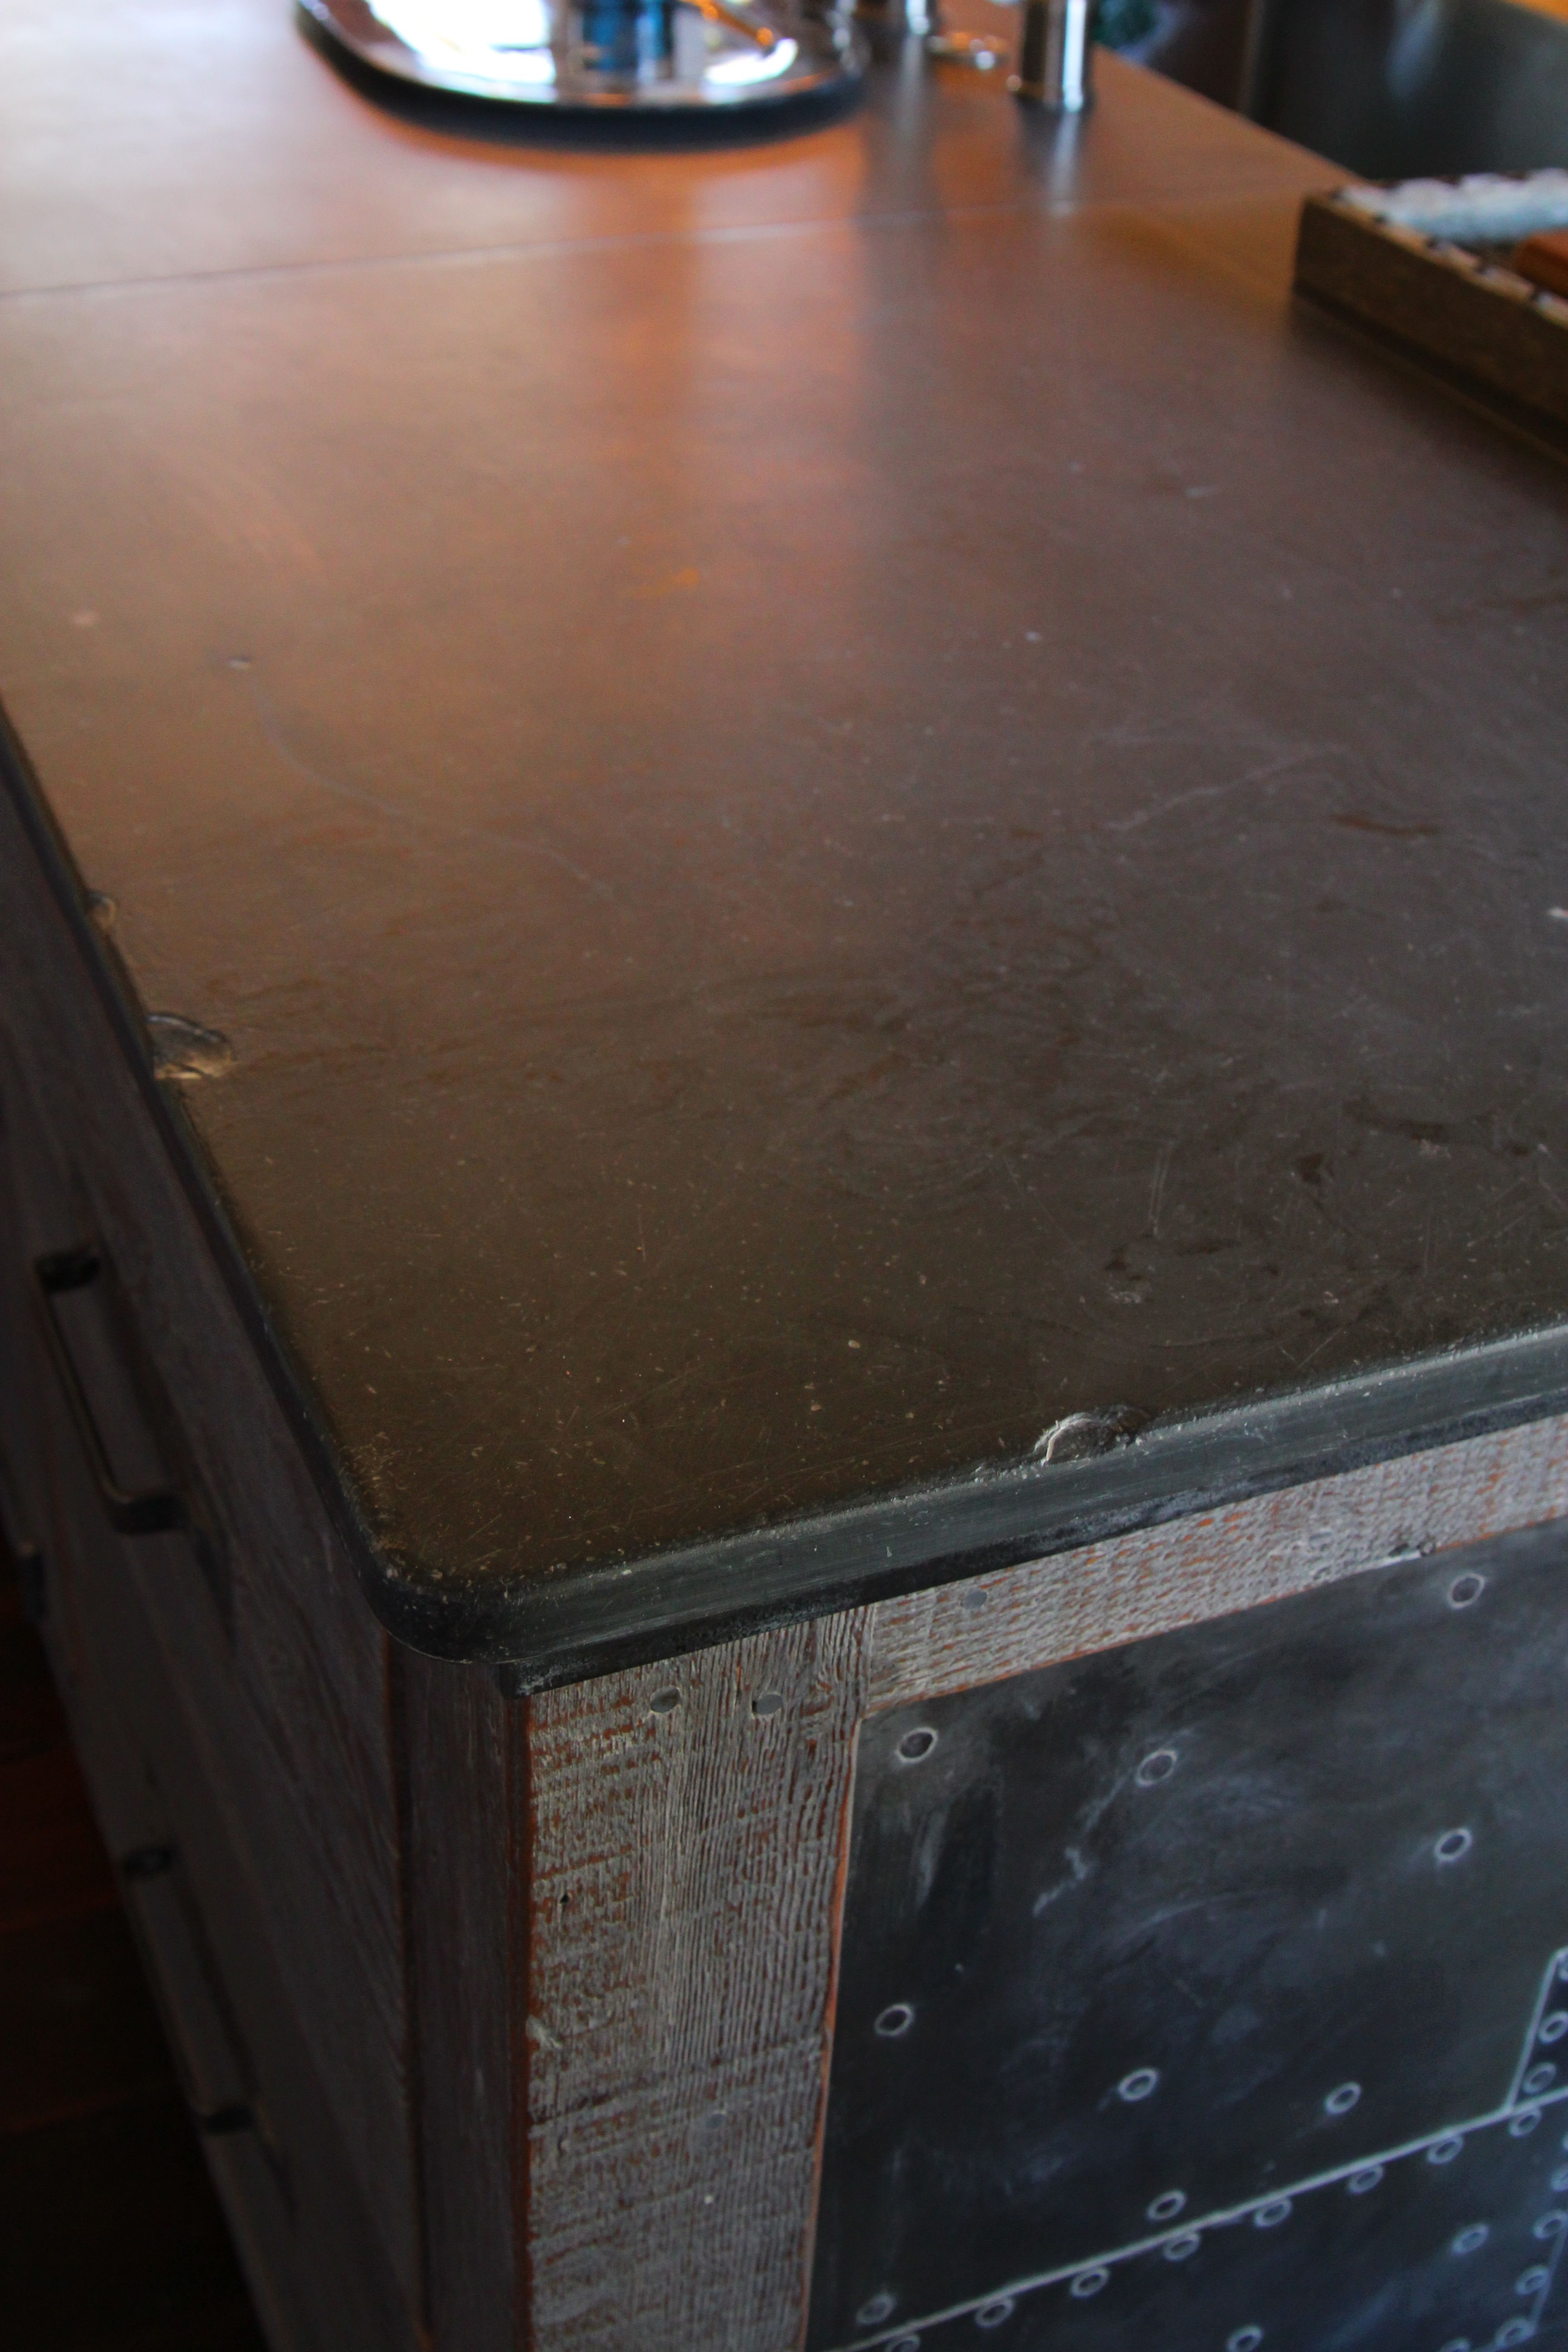 Counter Tops Made From Reclaimed Pool Table Slate (above).